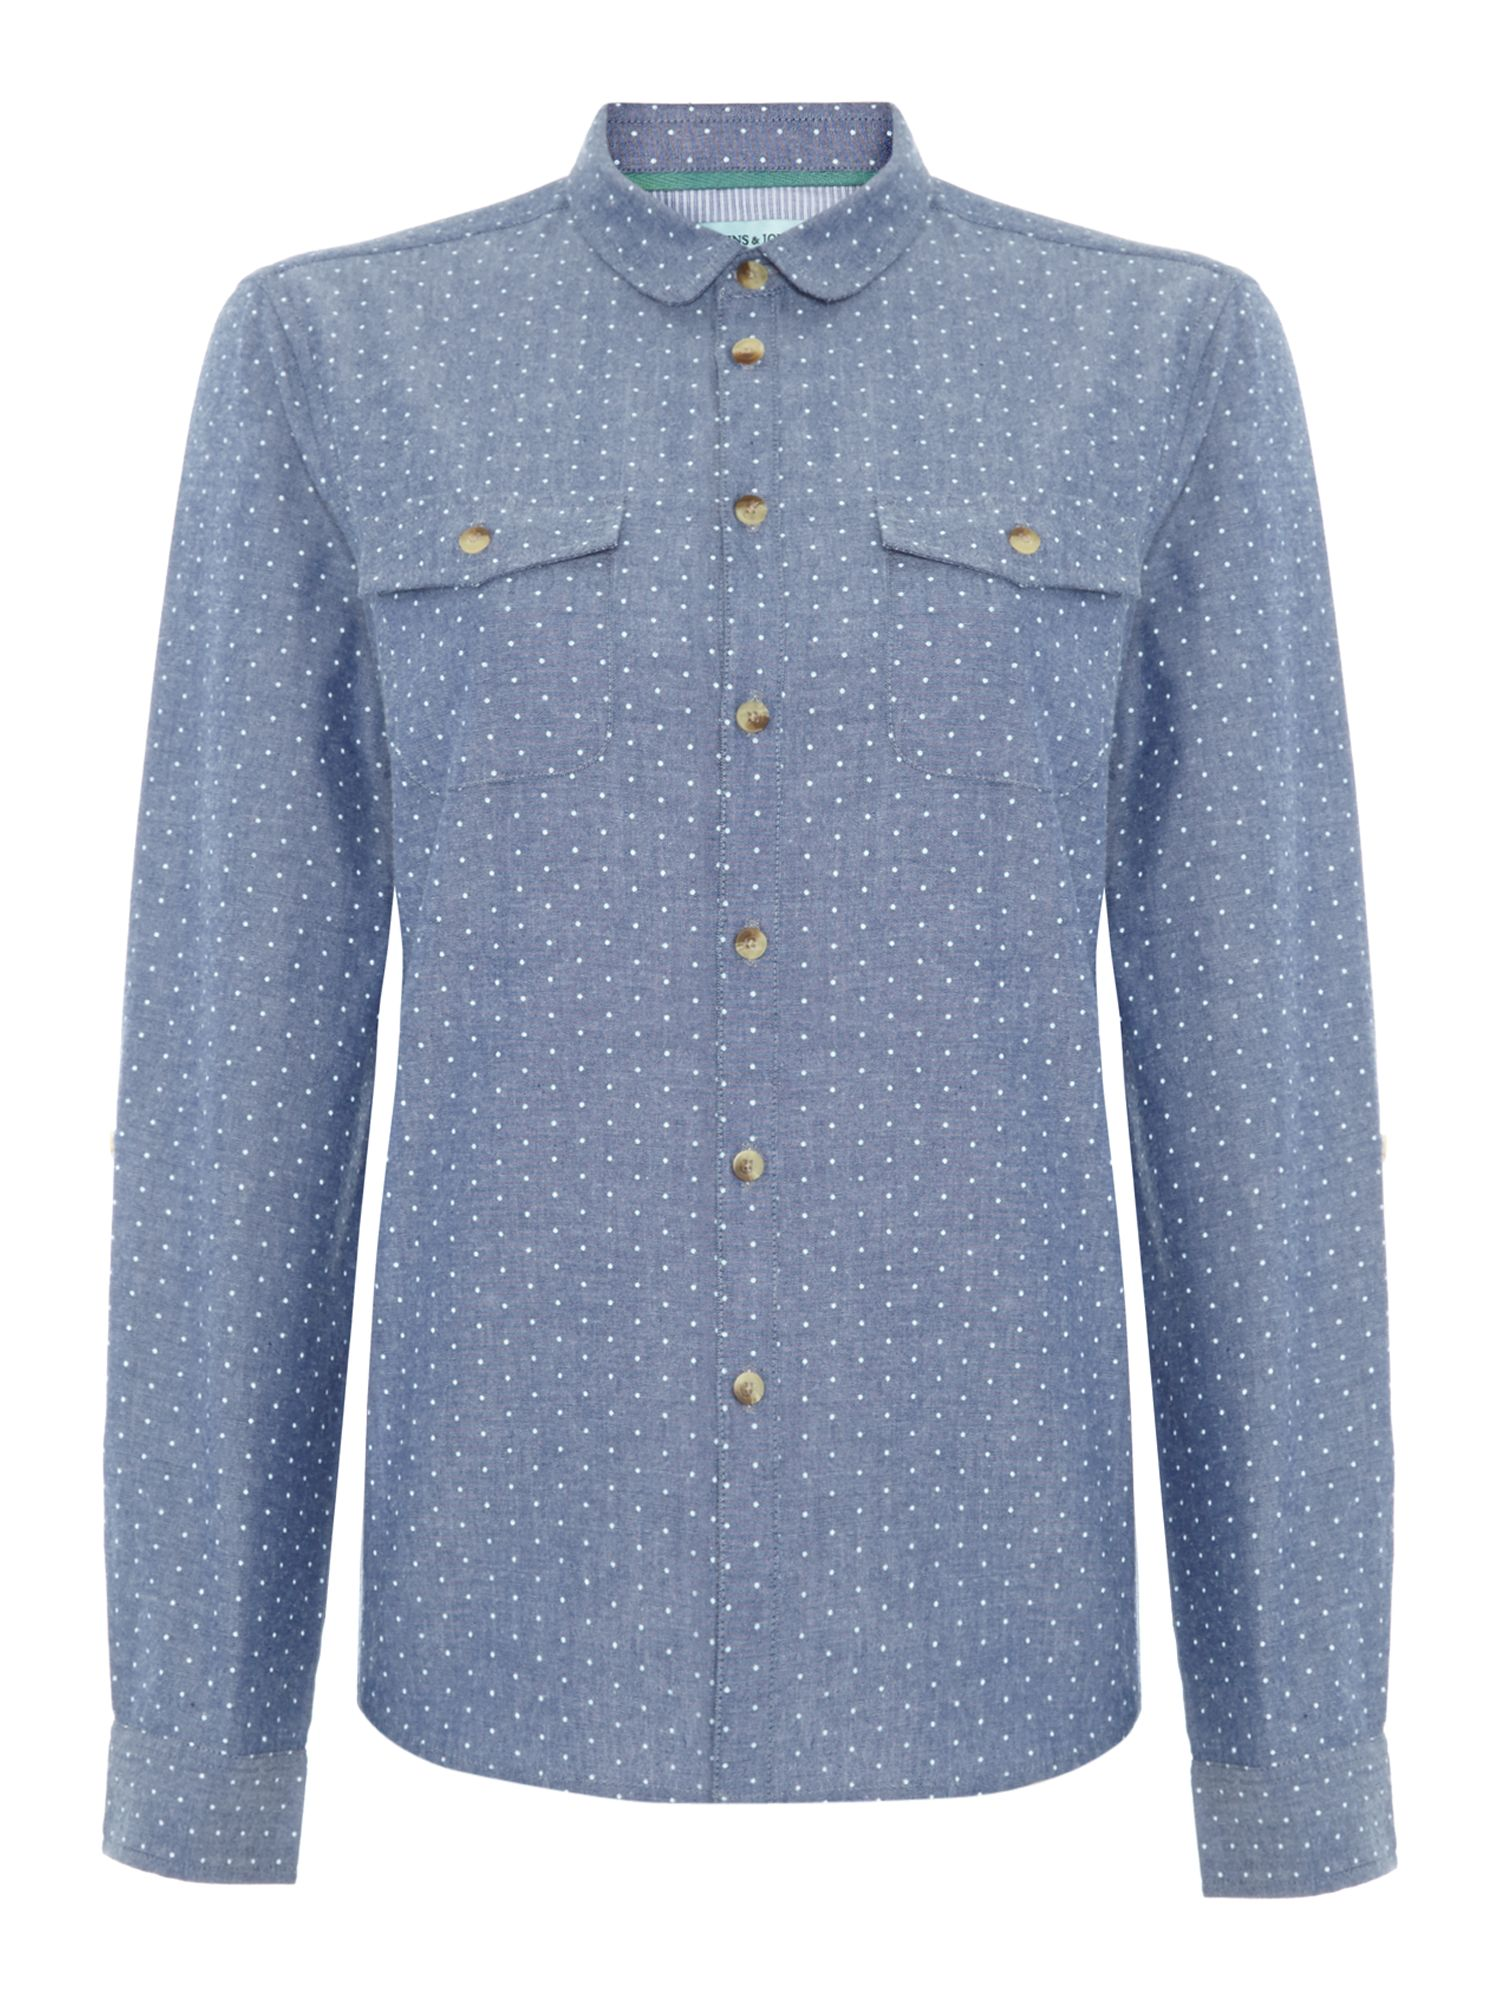 Chambray spot top shirt